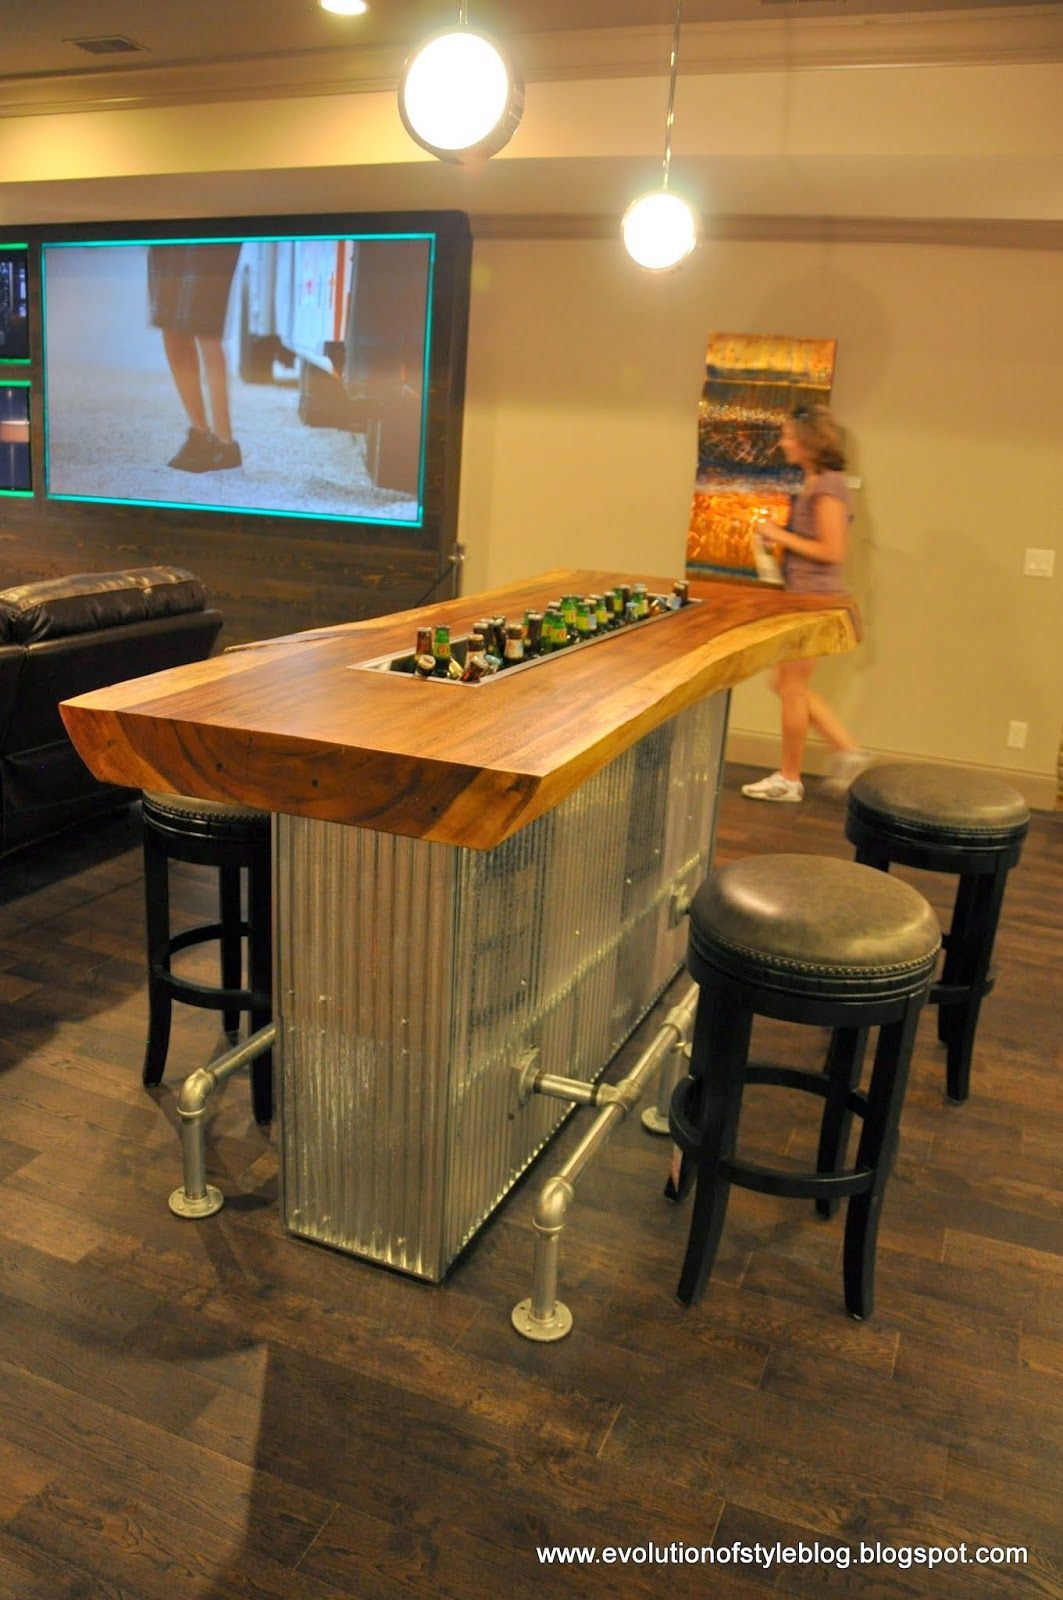 Great basement game room beverage bar the bella noelle model great basement game room beverage bar the bella noelle model builder claytondouglashomes watchthetrailerfo